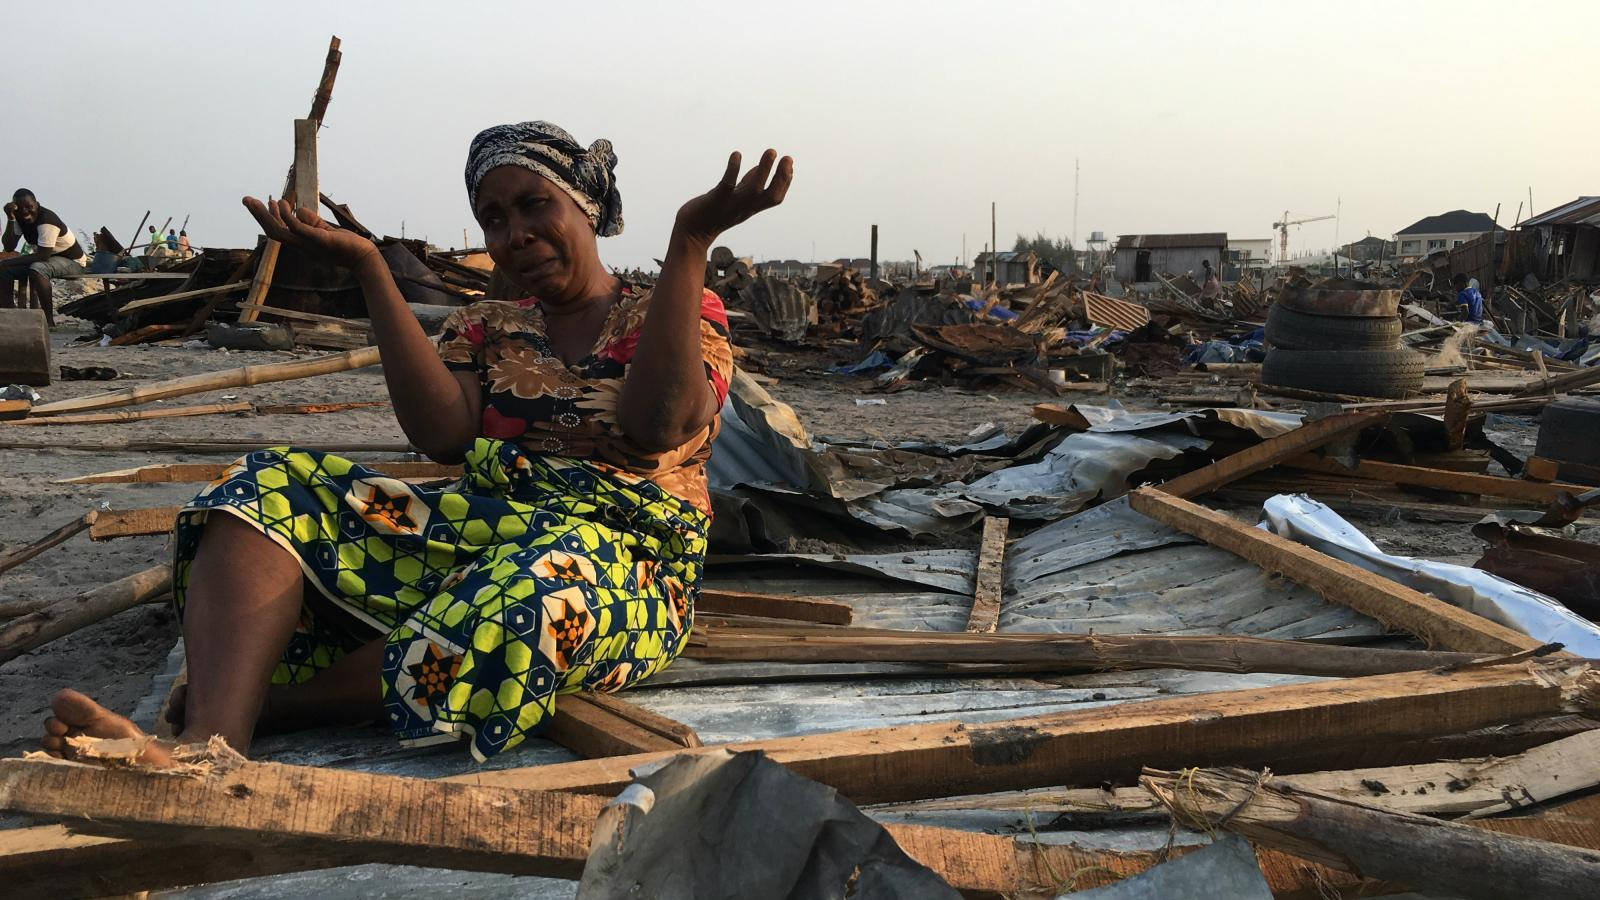 Lagos wants to be a modern mega city so its forcing thousands of slum dwellers from their homes